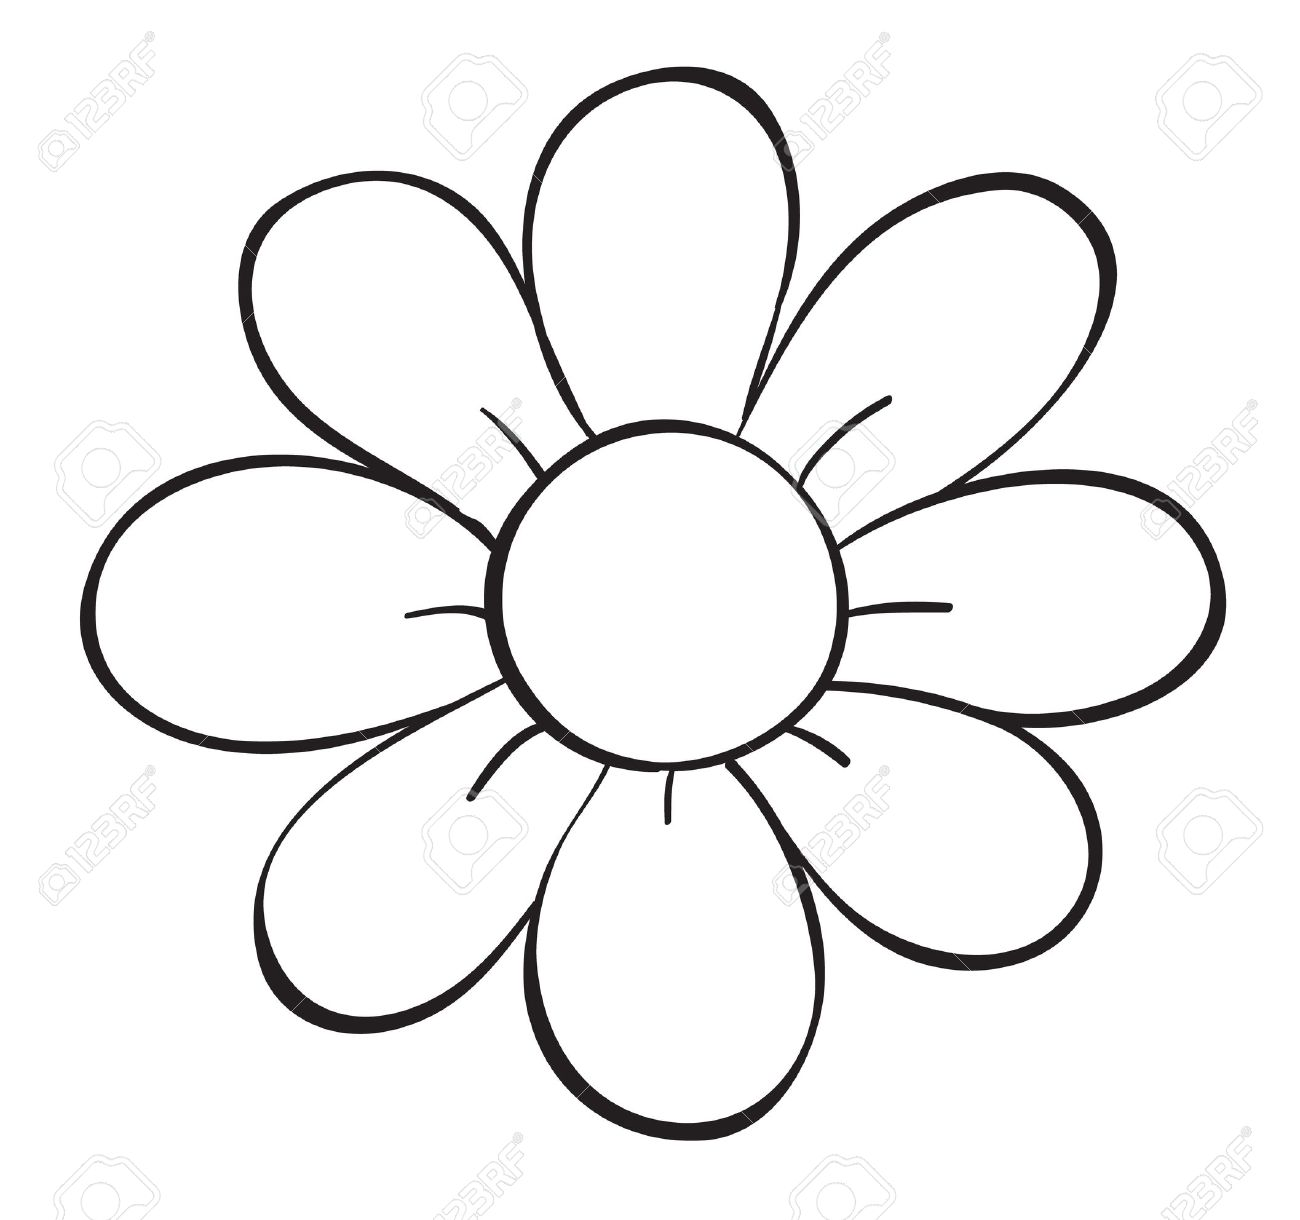 Illustration of a flower sketch on white background royalty free illustration of a flower sketch on white background stock vector 16105523 mightylinksfo